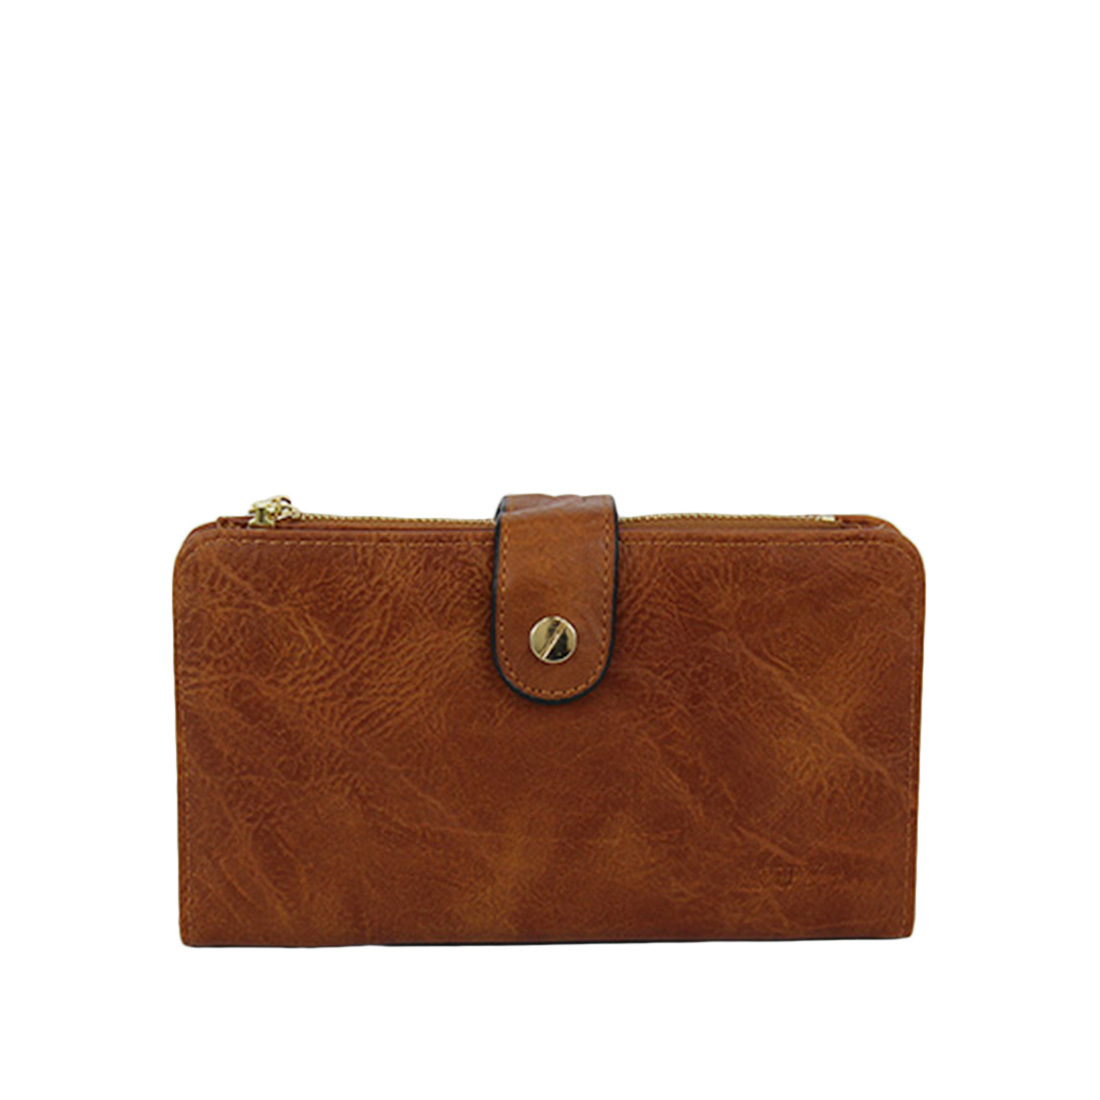 Big plain leather with gold clip